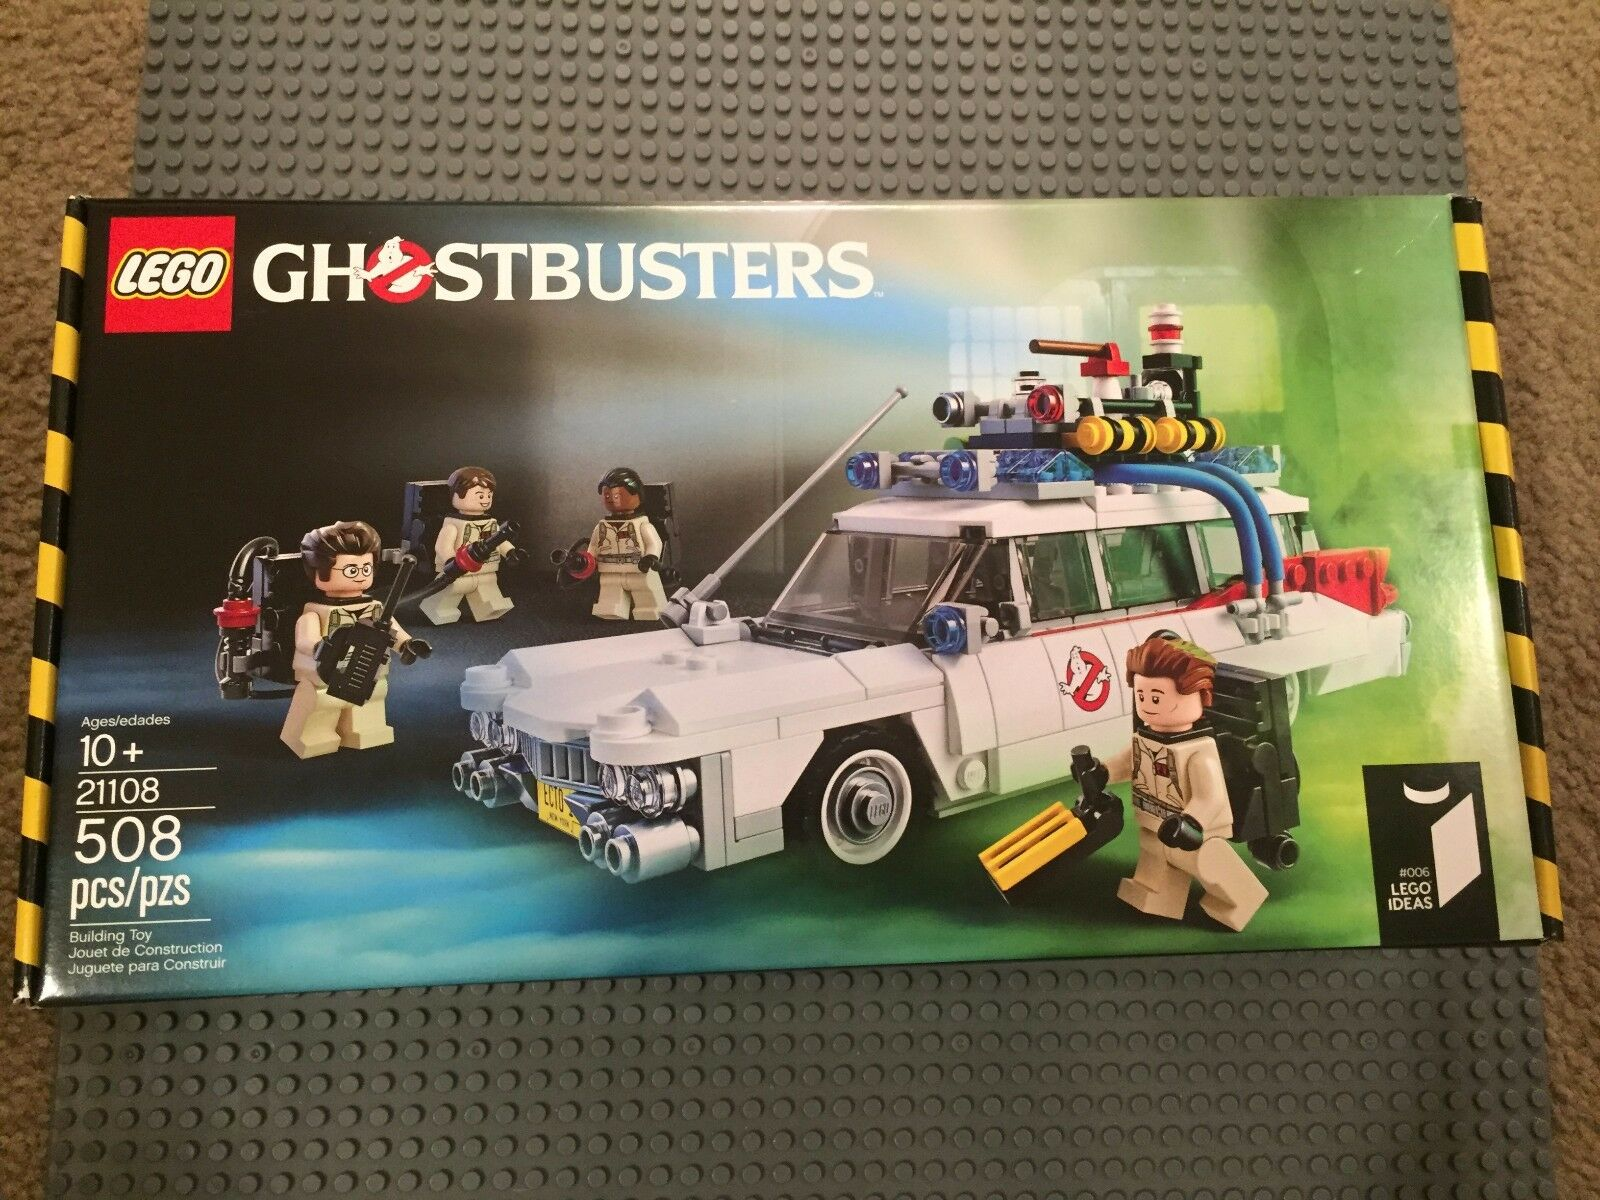 Lego 21108 Ideas Ghostbusters Ecto 1 brand new sealed box 4 minifigures rare